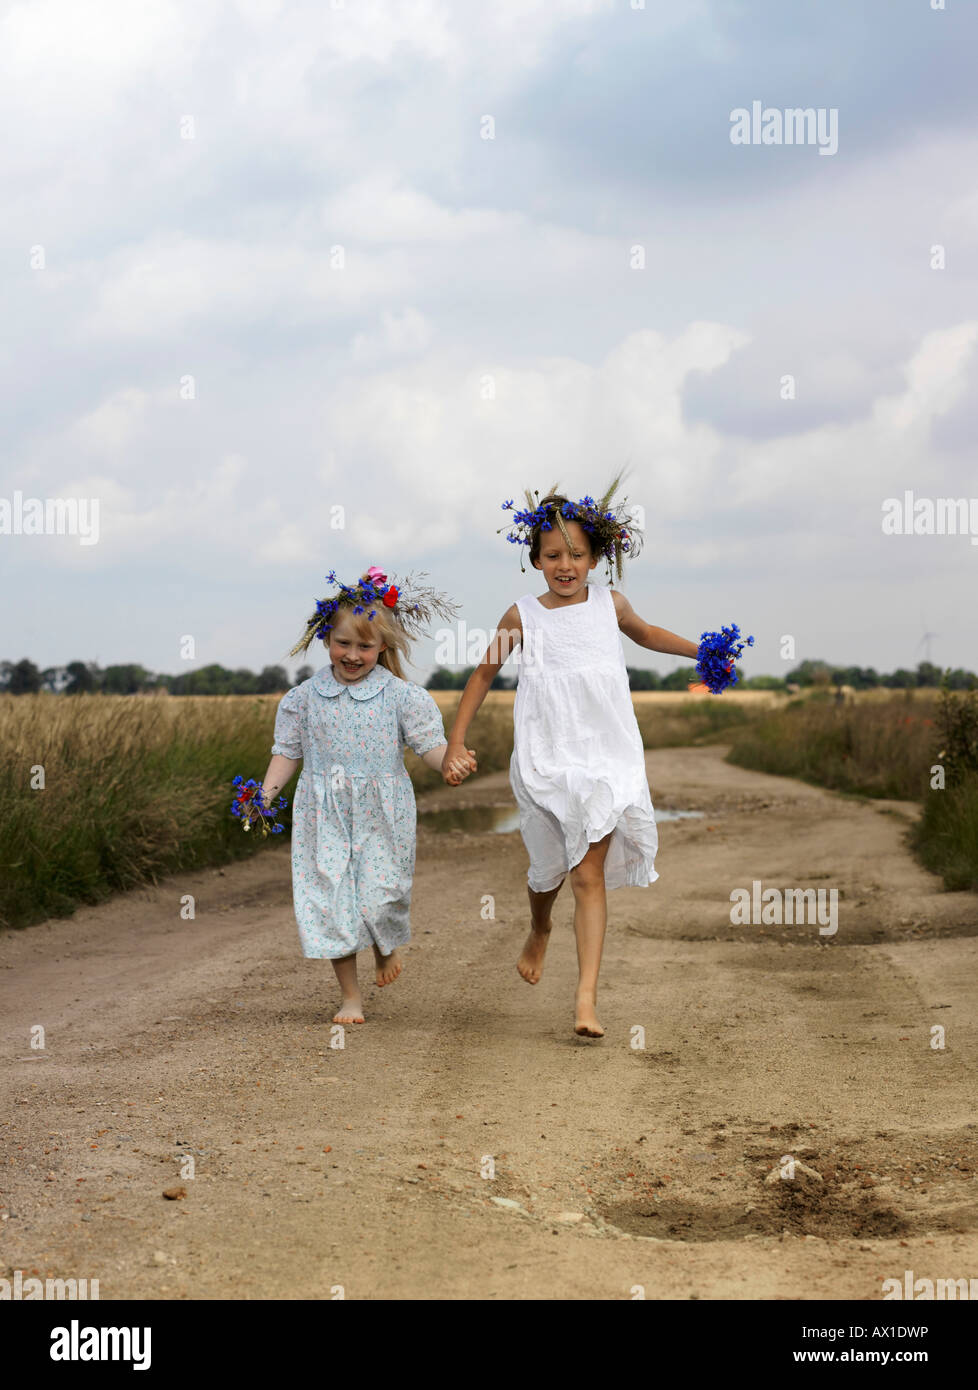 Two young girls running along a country road - Stock Image